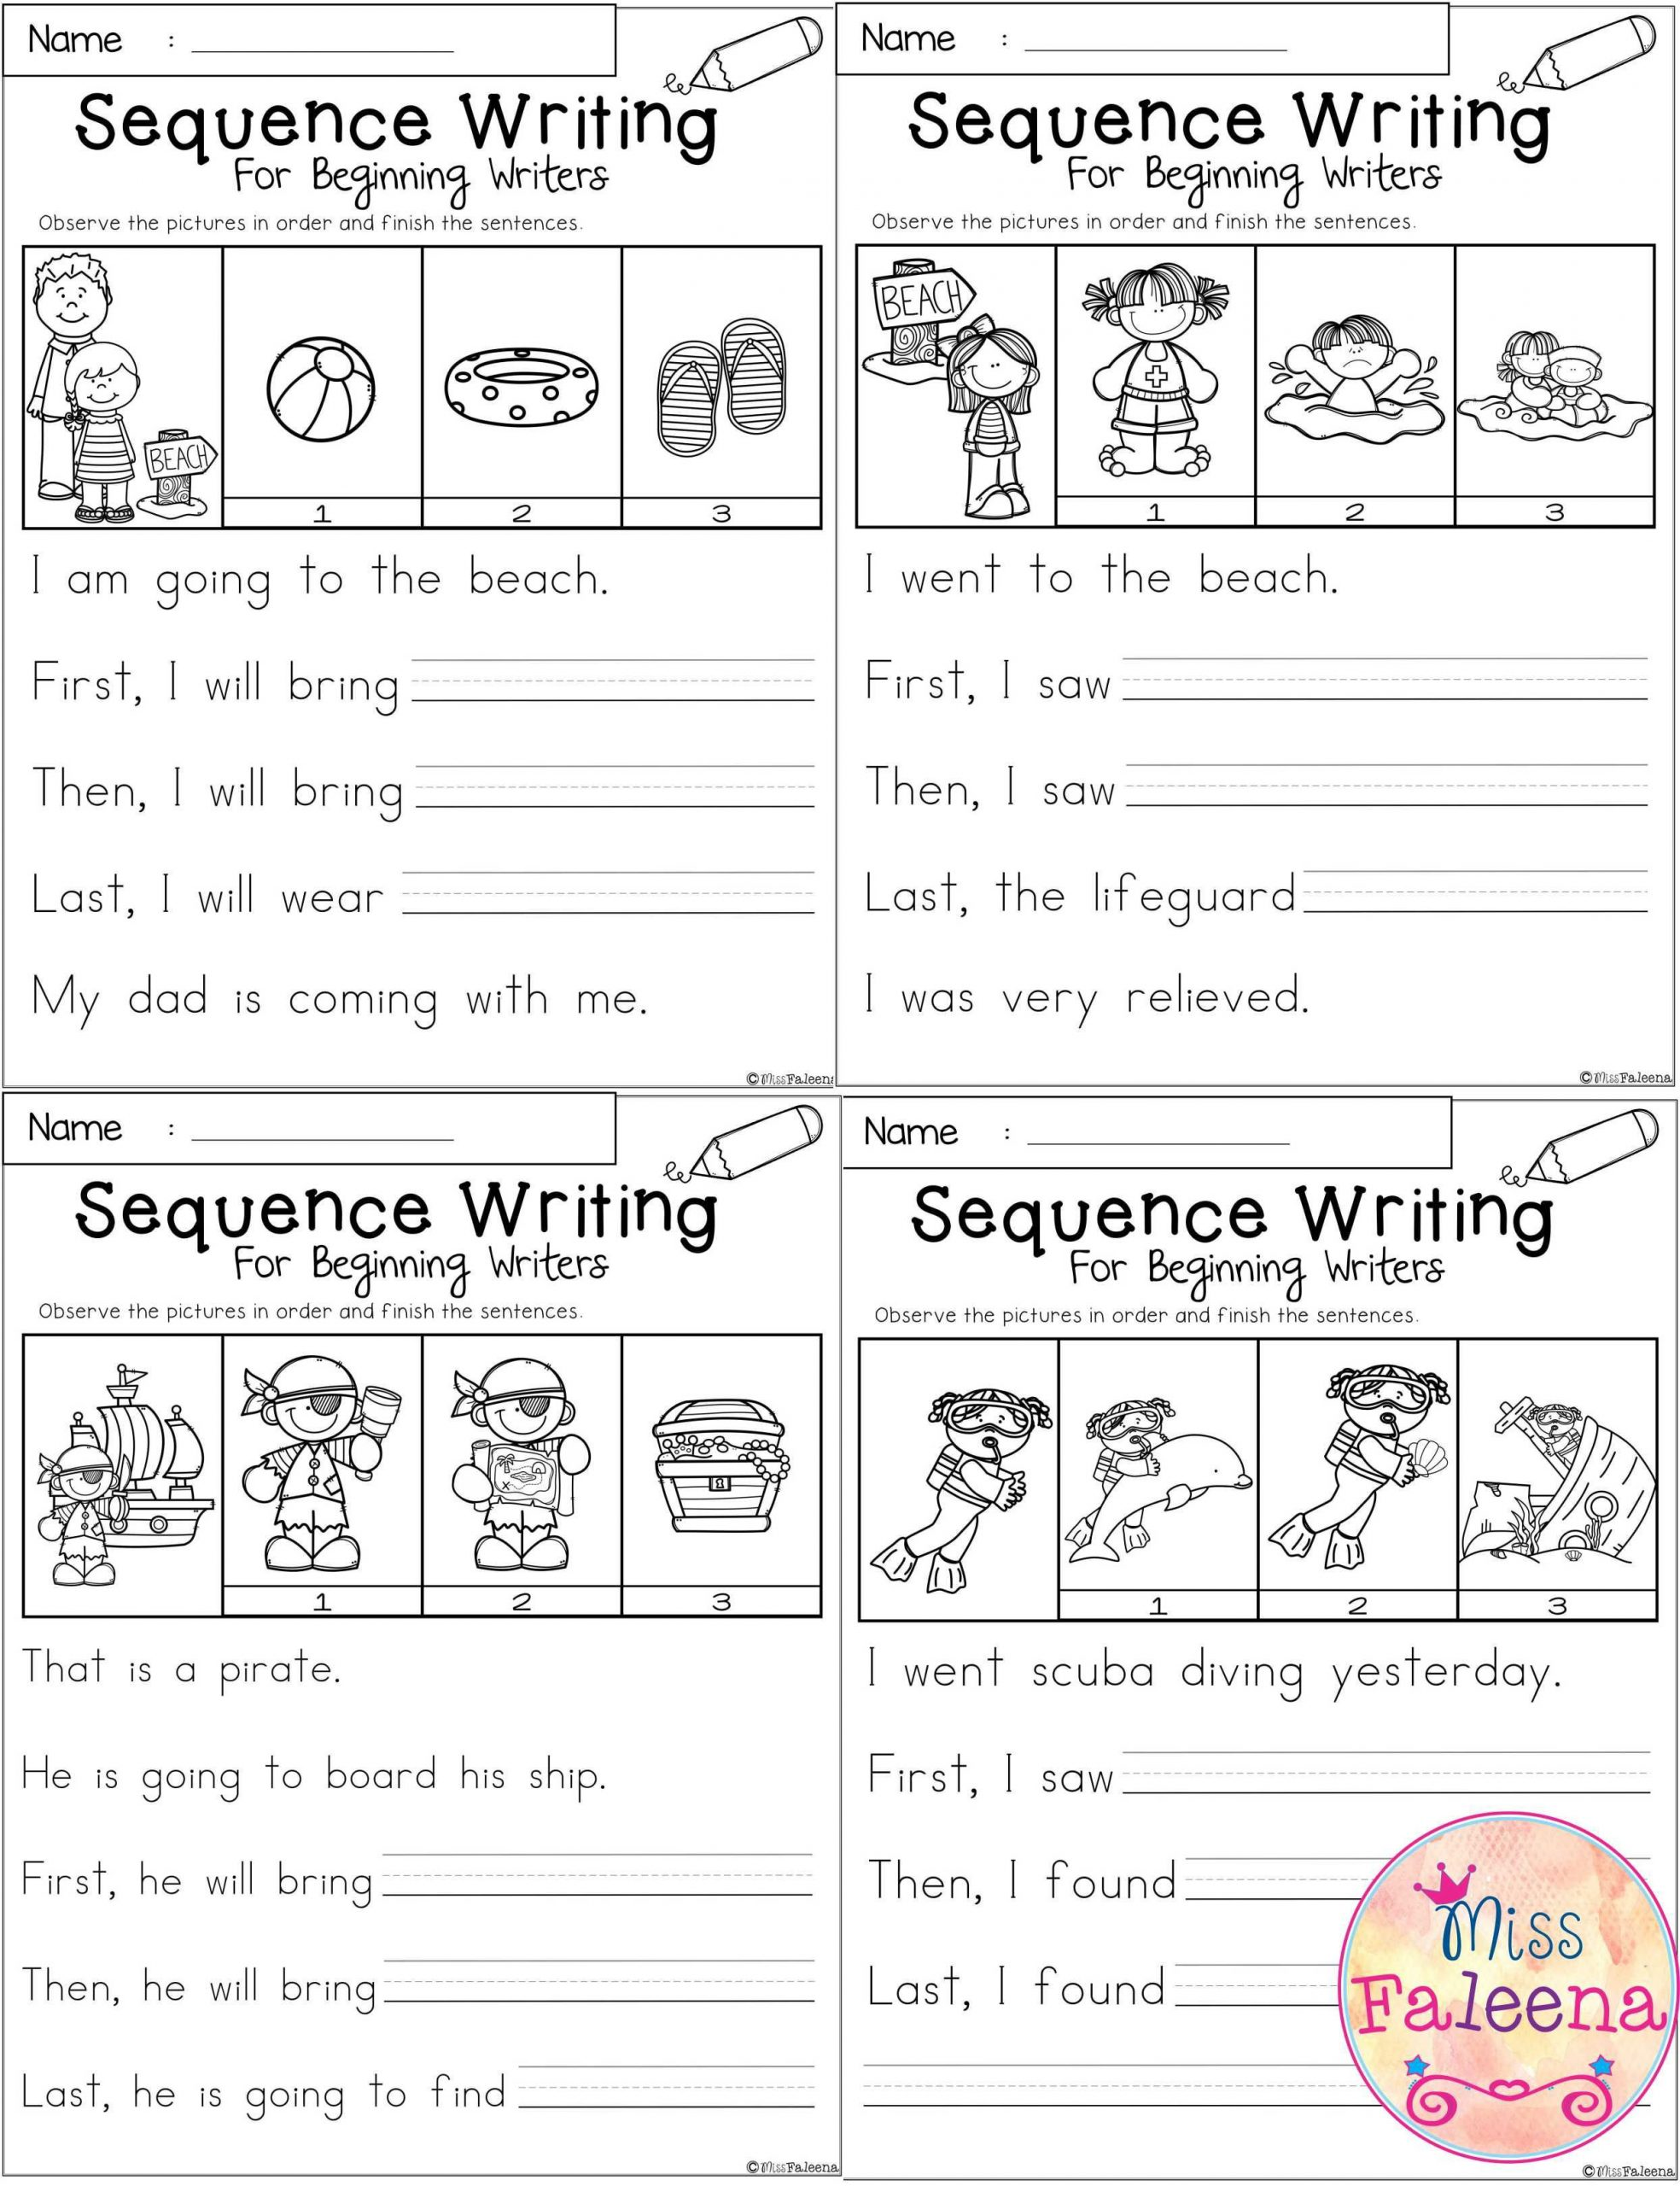 Sequencing Worksheets for 1st Grade August Sequence Writing for Beginning Writers